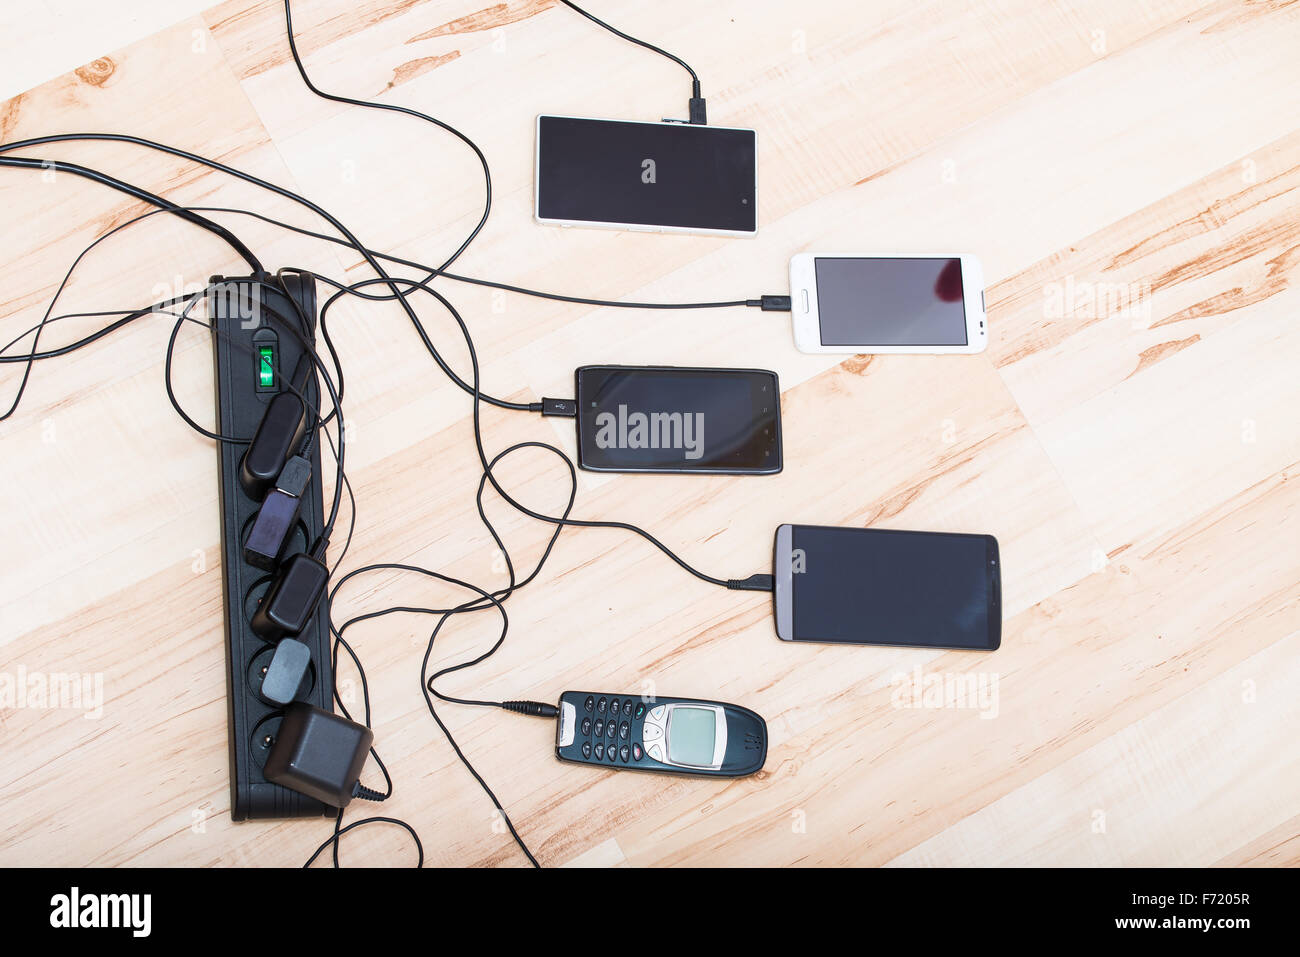 four smartphones and one classic phone connected to chargers - Stock Image